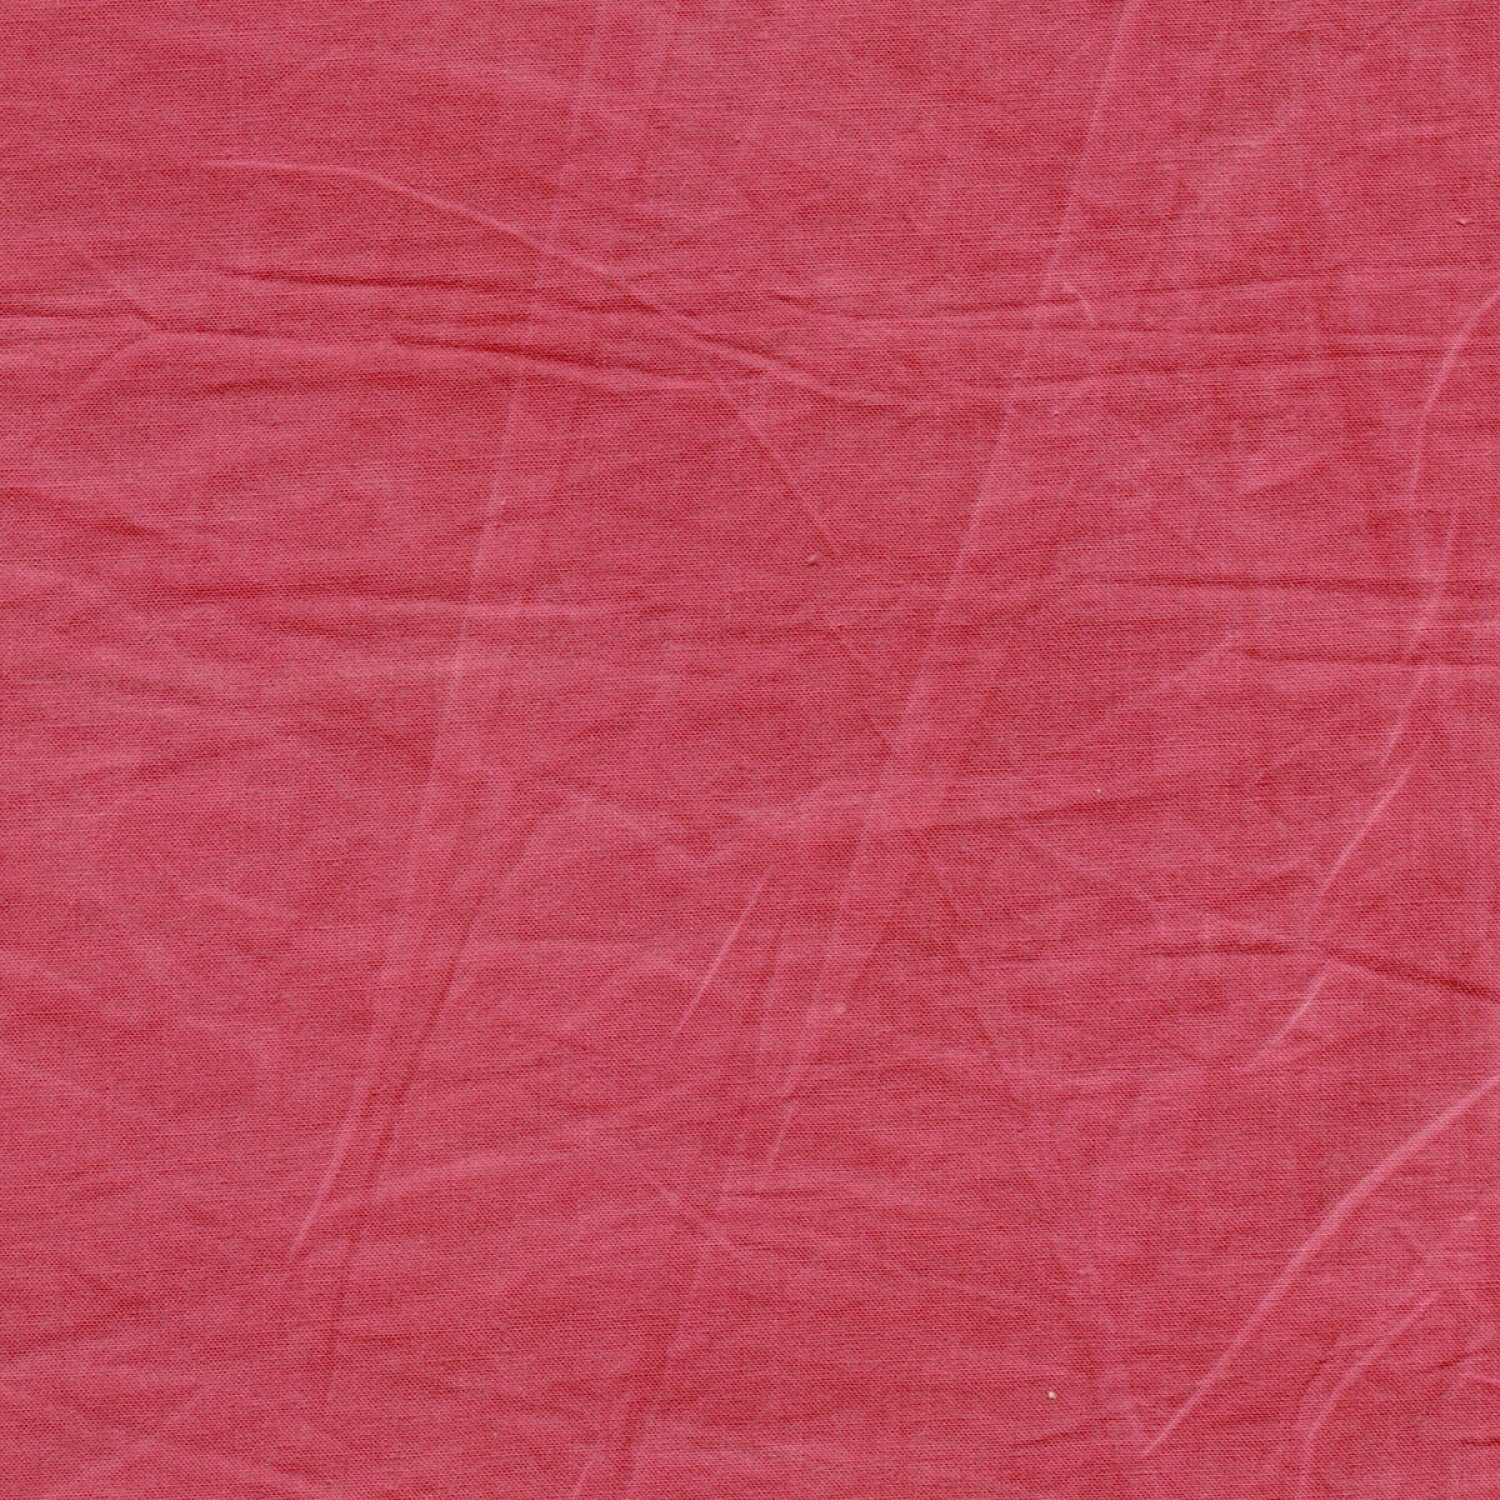 Marcus Fabrics - New Aged Muslin - Red 7715-0124